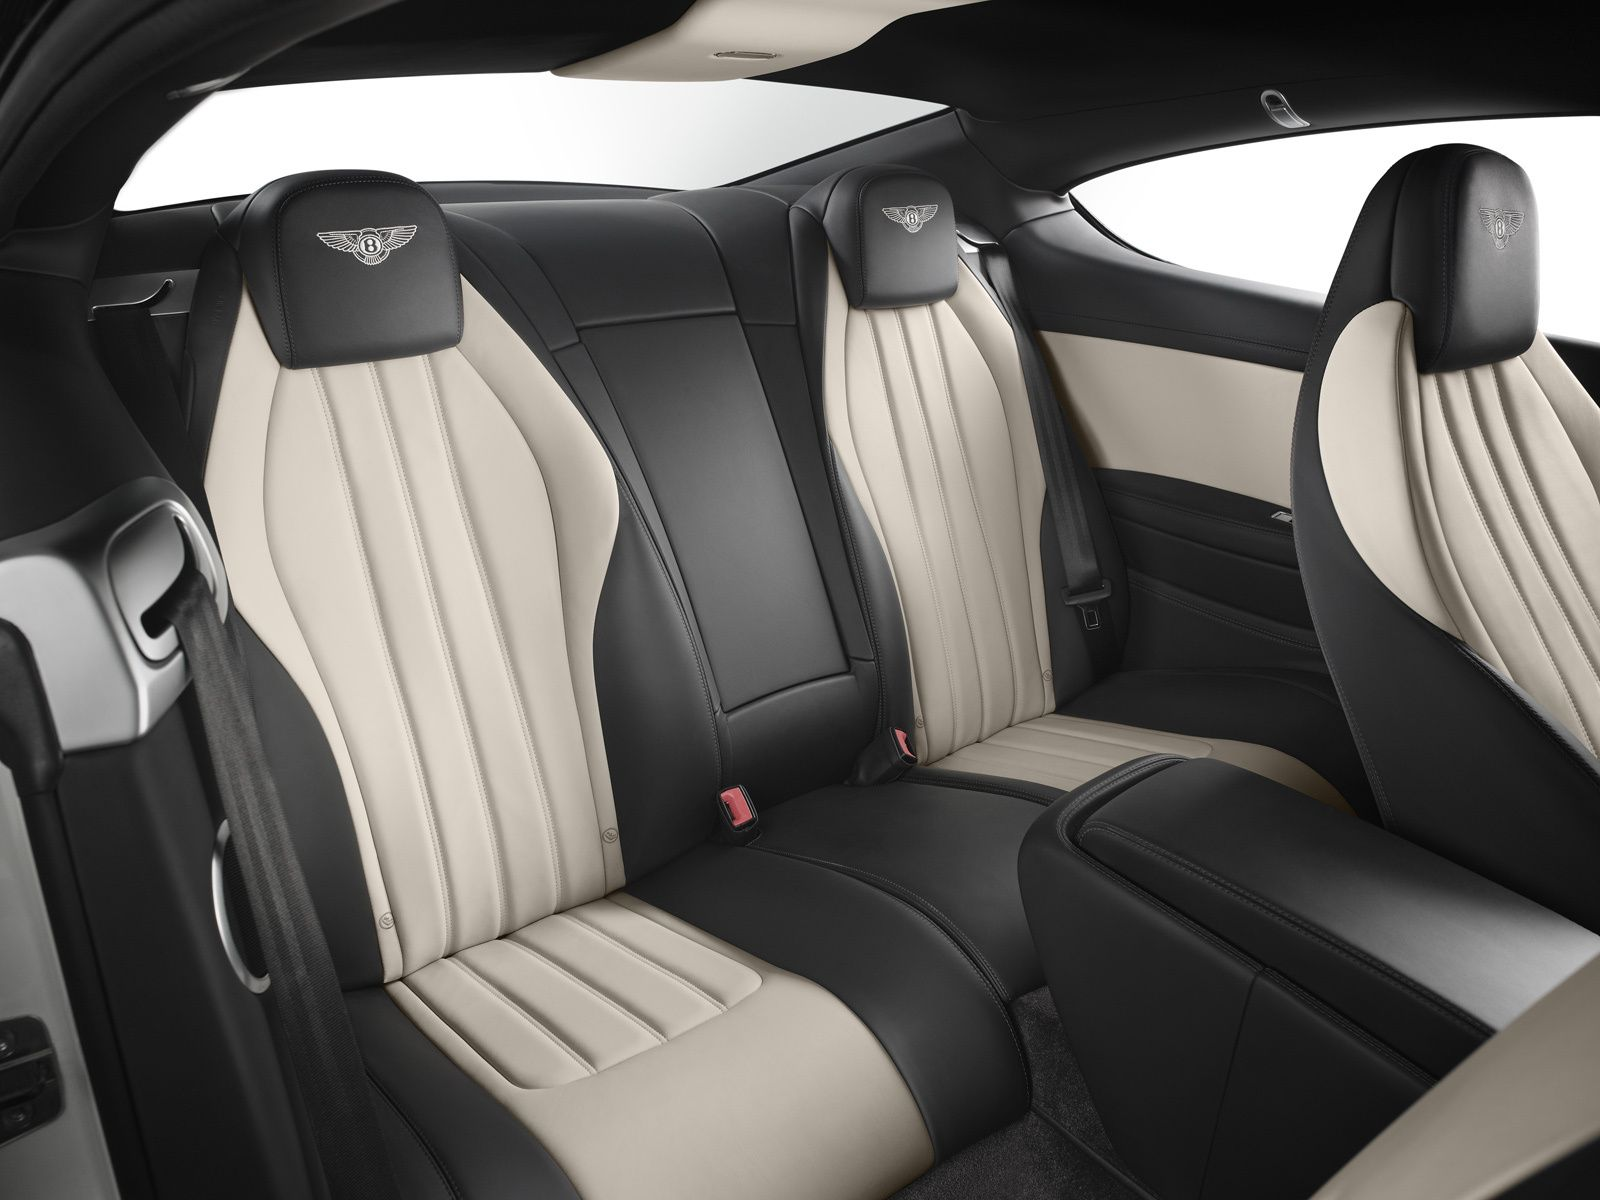 Bentley continental v8 leather rear seat modern interior black bentley continental v8 leather rear seat modern interior black cream bege stripe stitches coupe car vanachro Image collections